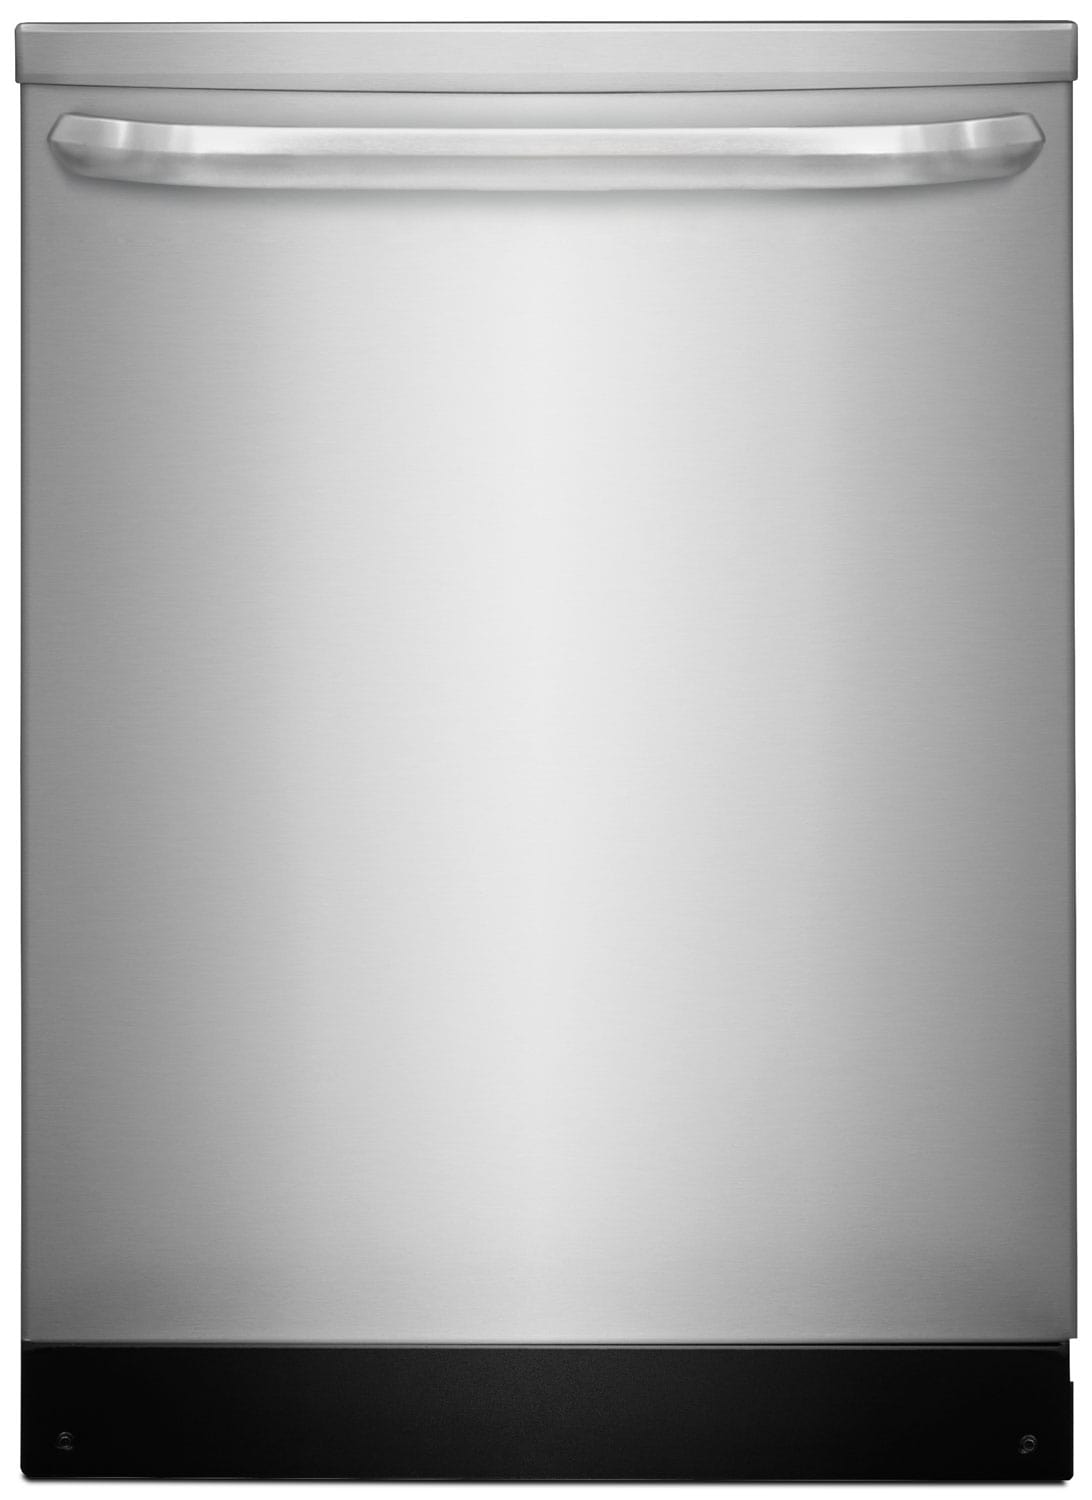 Frigidaire Built-In Dishwasher - Stainless Steel